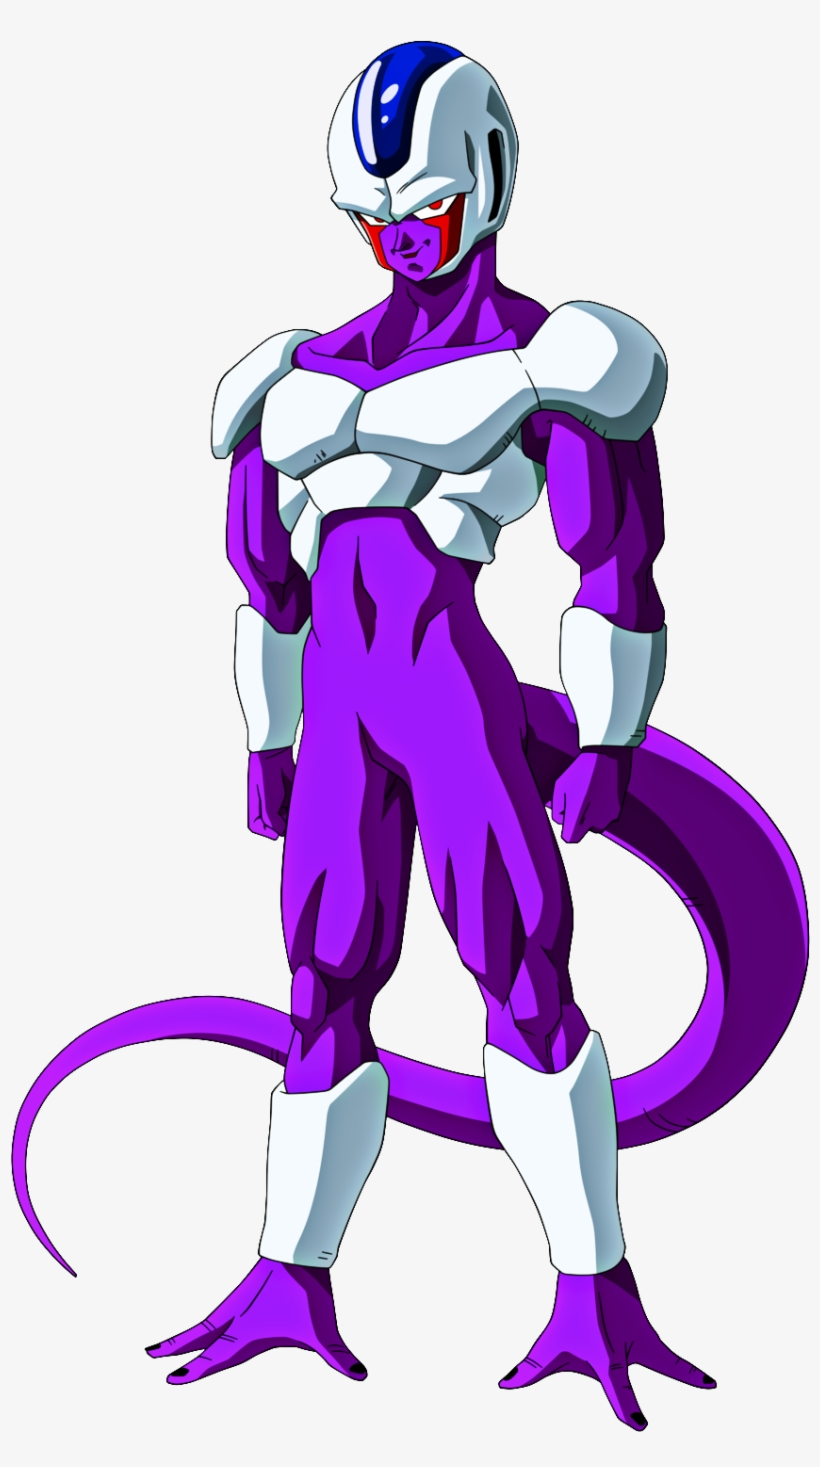 Cooler Villains Wiki Fandom Powered By Wikia - Cooler From Dragon Ball Z, transparent png #168463